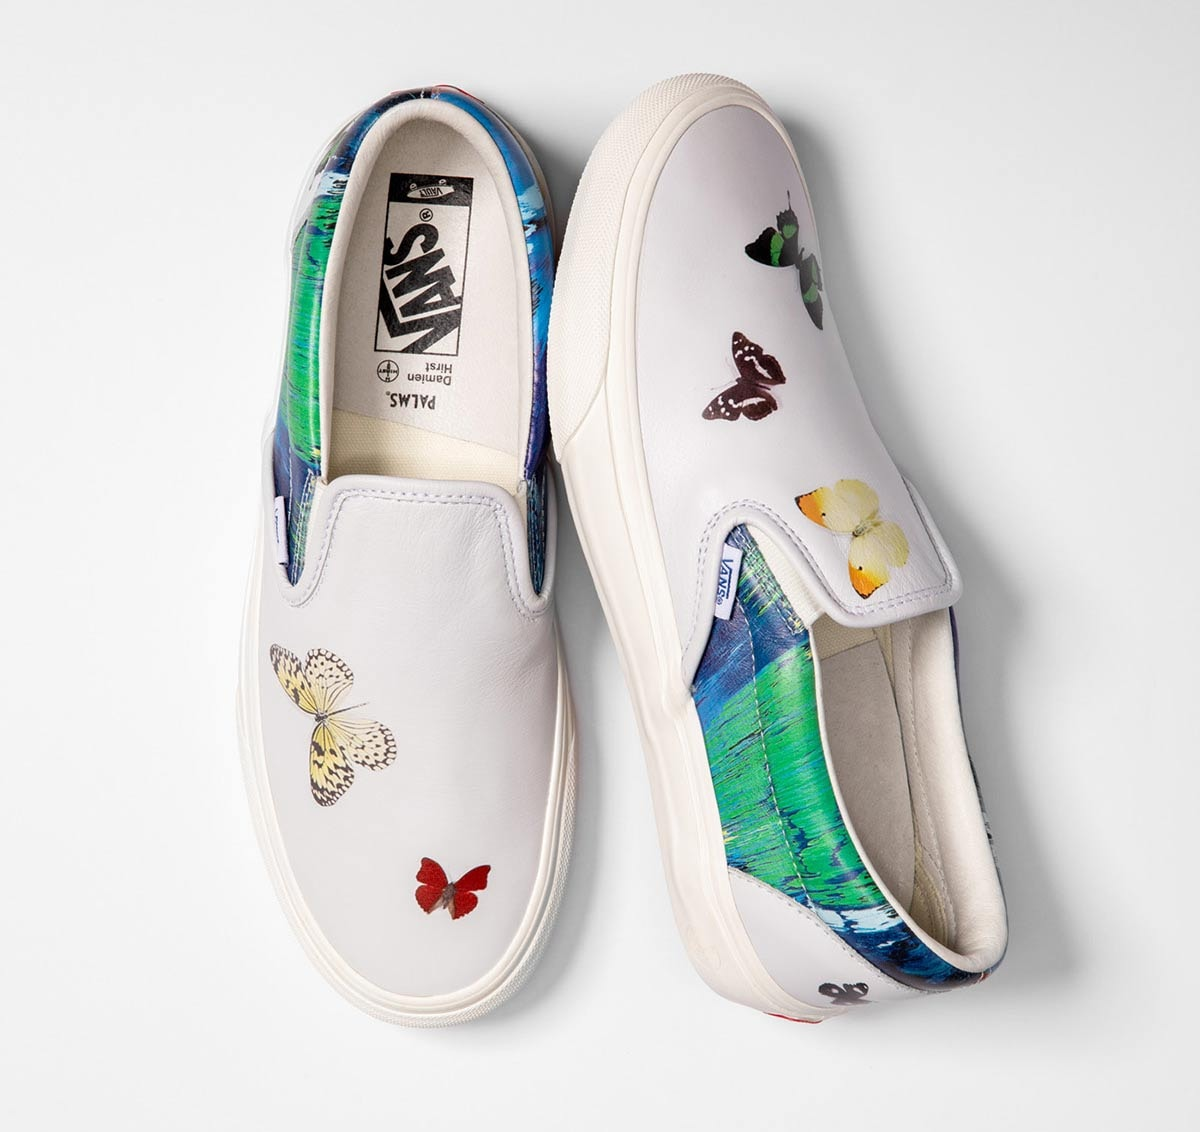 Vans taps artist Damien Hirst for latest collaboration